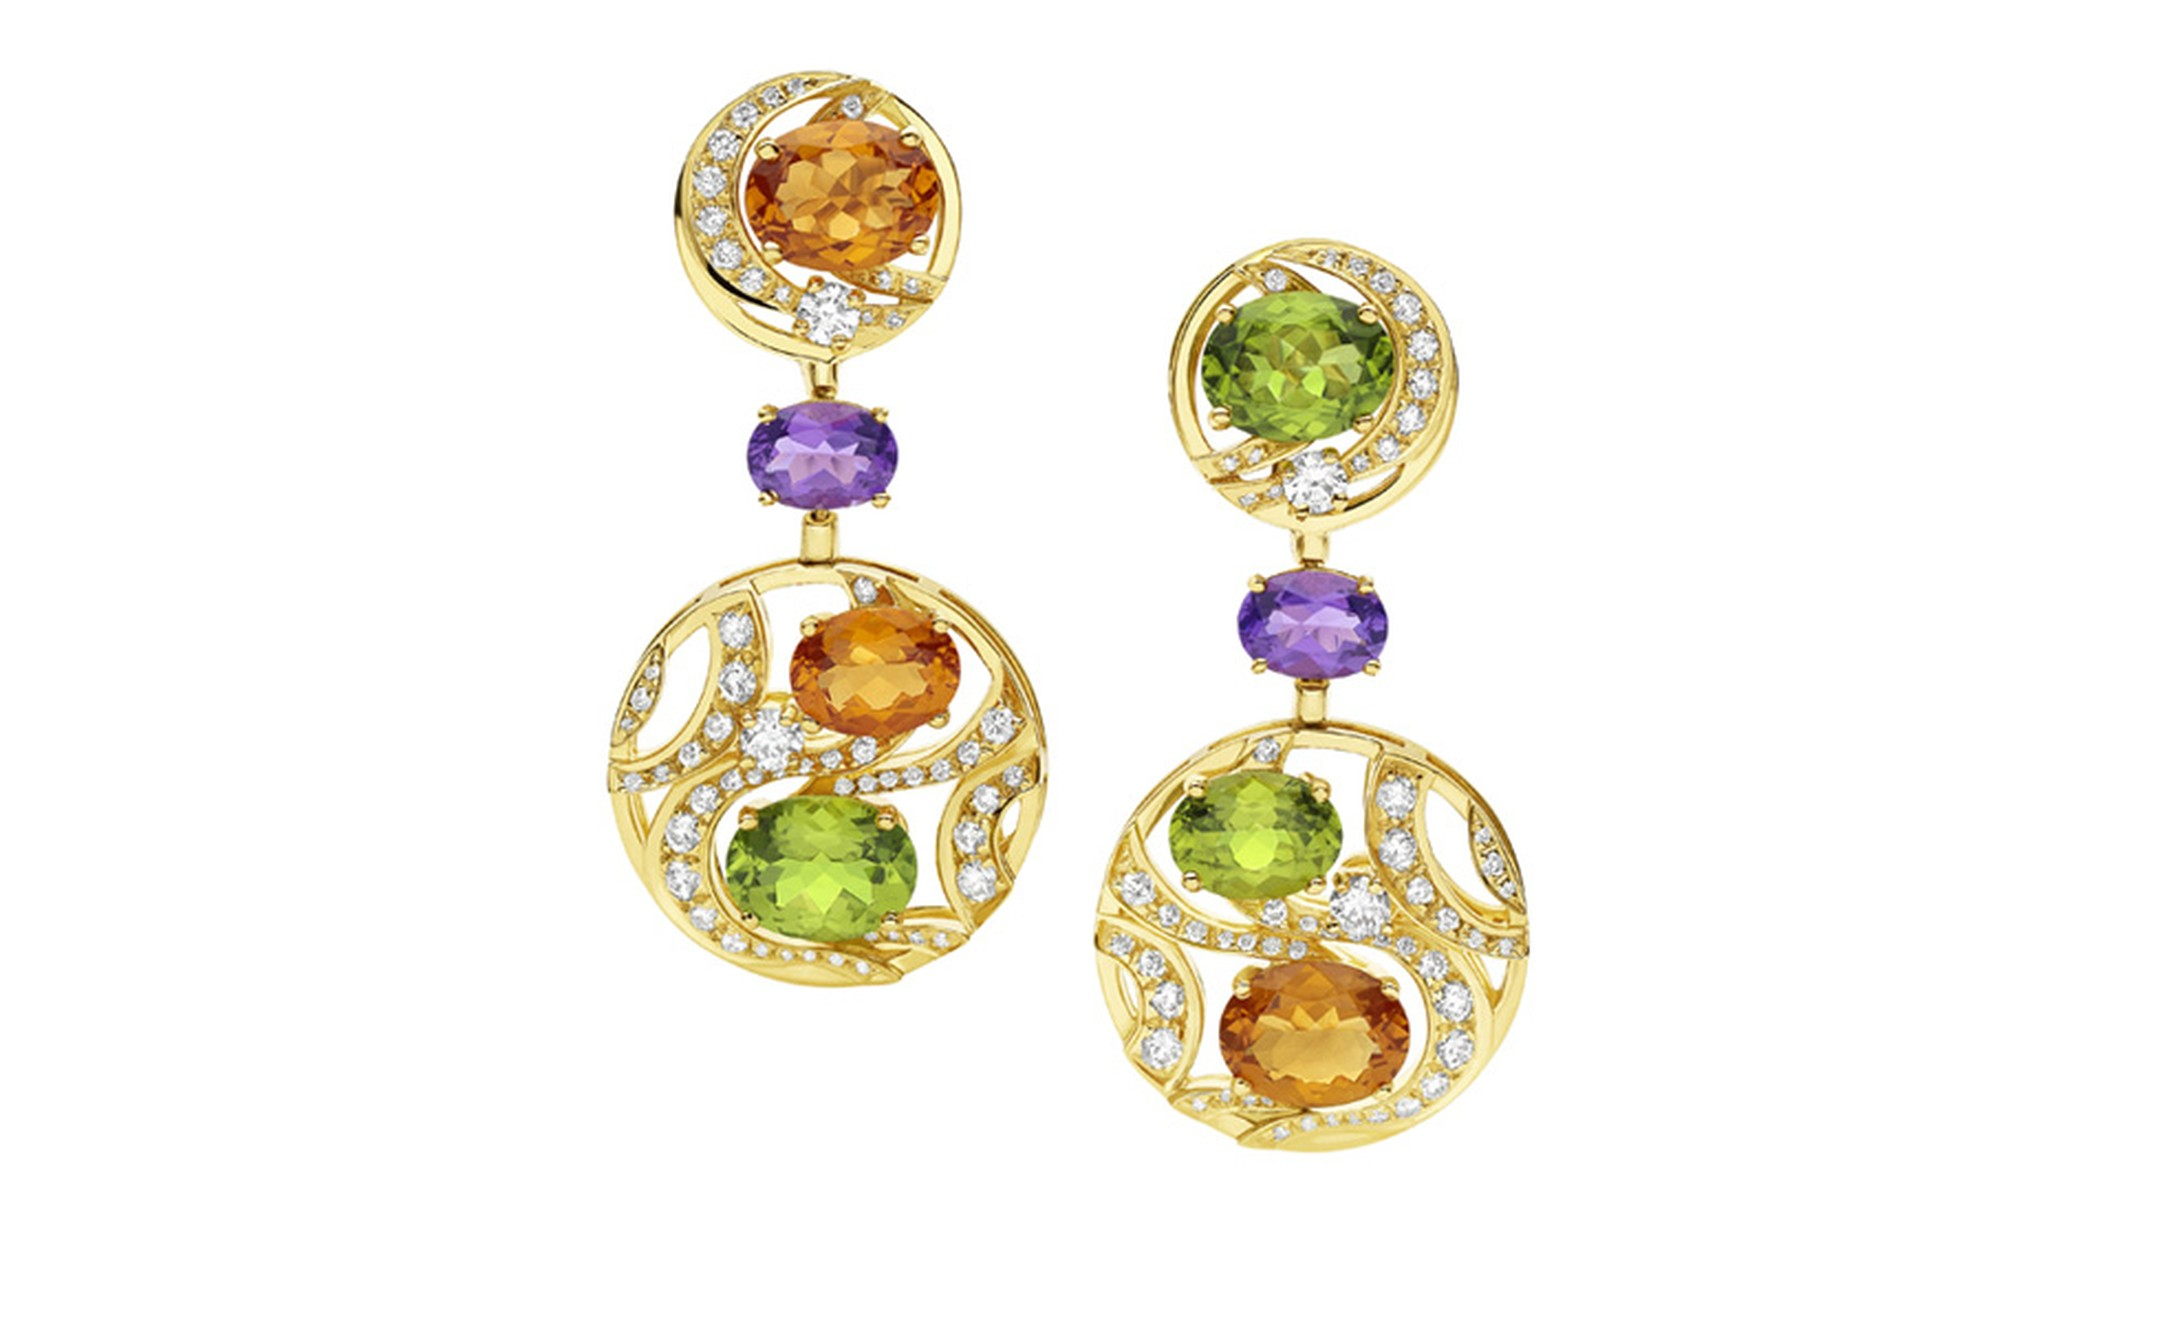 Bulgari. Mediterranean Eden yellow gold earrings with citrine quartzes, peridots, amethysts, diamonds and pavé diamonds. Price from £12.300,00